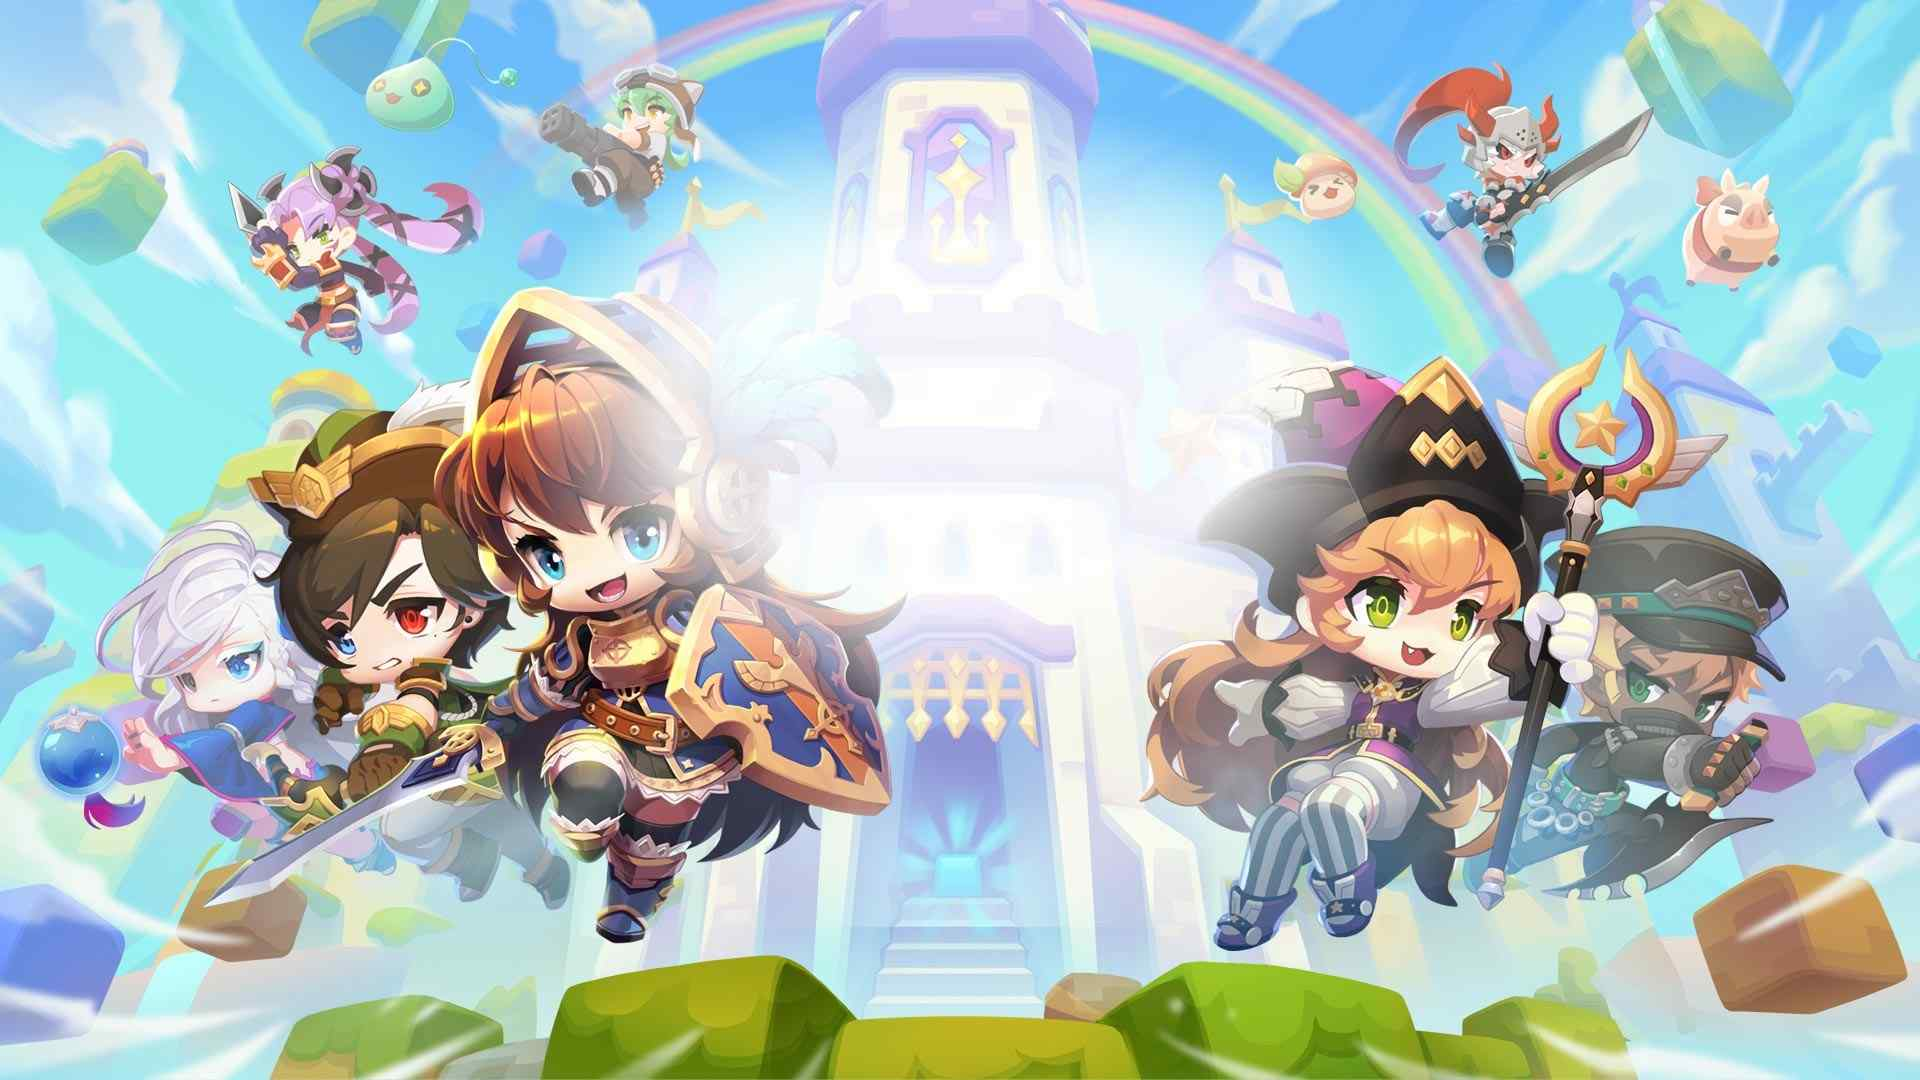 """Since many MapleStory players don't know how to unlock pocket slot in 2021, we've decided to create this ultimate guide to help you out! So, to sum it all up, to unlock the Pocket Slot you need to get your Charm to level 30, and then click on the Star in order to find a quest which is called """"Excessively Charming!"""". Once you finish that quest, you'll unlock your pocket slot and receive a Rose Pocket Item"""